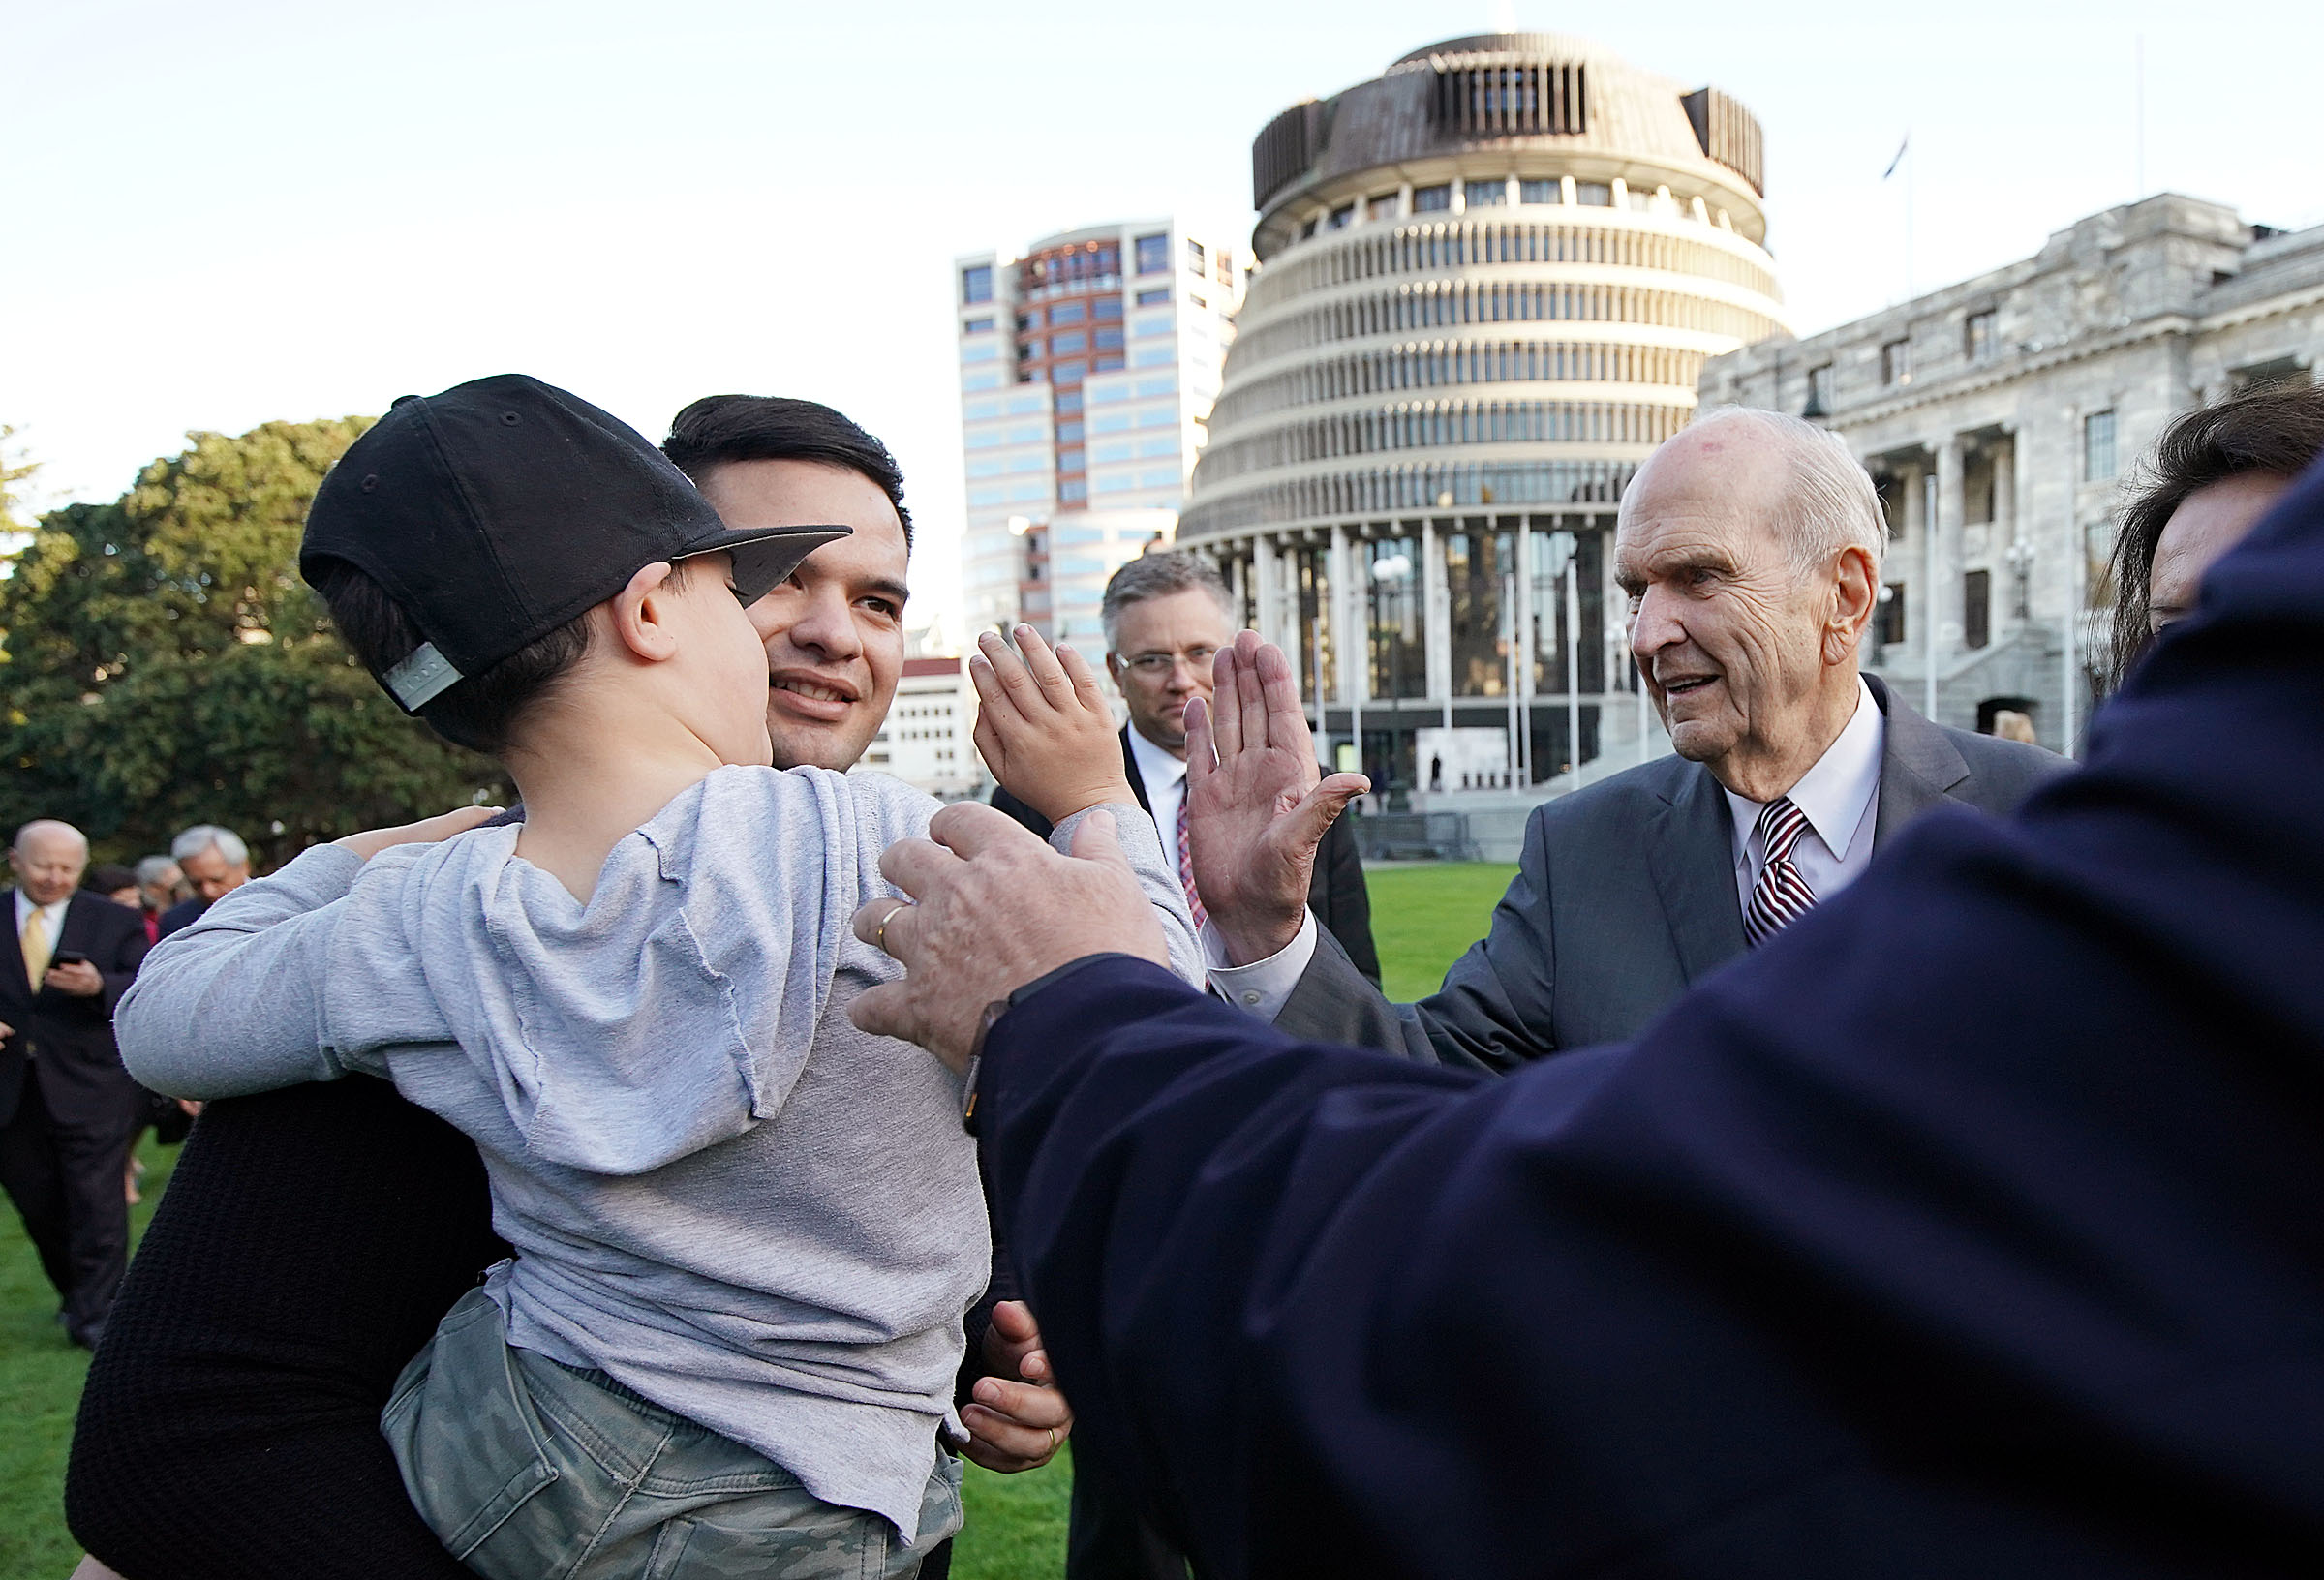 President Russell M. Nelson of The Church of Jesus Christ of Latter-day Saints, right, greets Quentin Daniels and his son Archer Daniels after meeting with New Zealand Prime Minister Jacinda Ardern in Wellington on Monday, May 20, 2019.